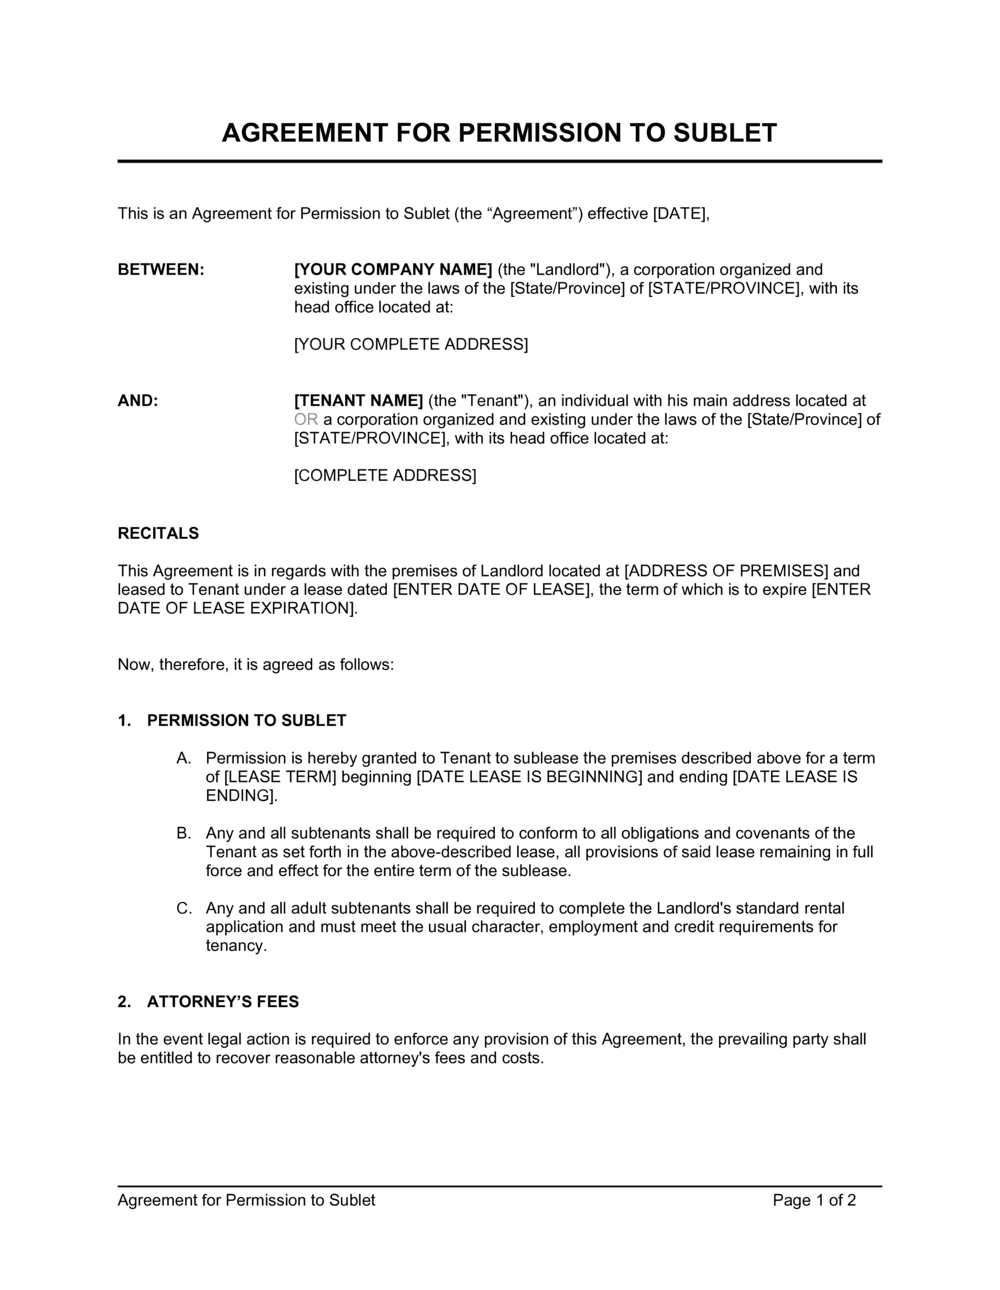 Business-in-a-Box's Agreement for Permission to Sublet Template